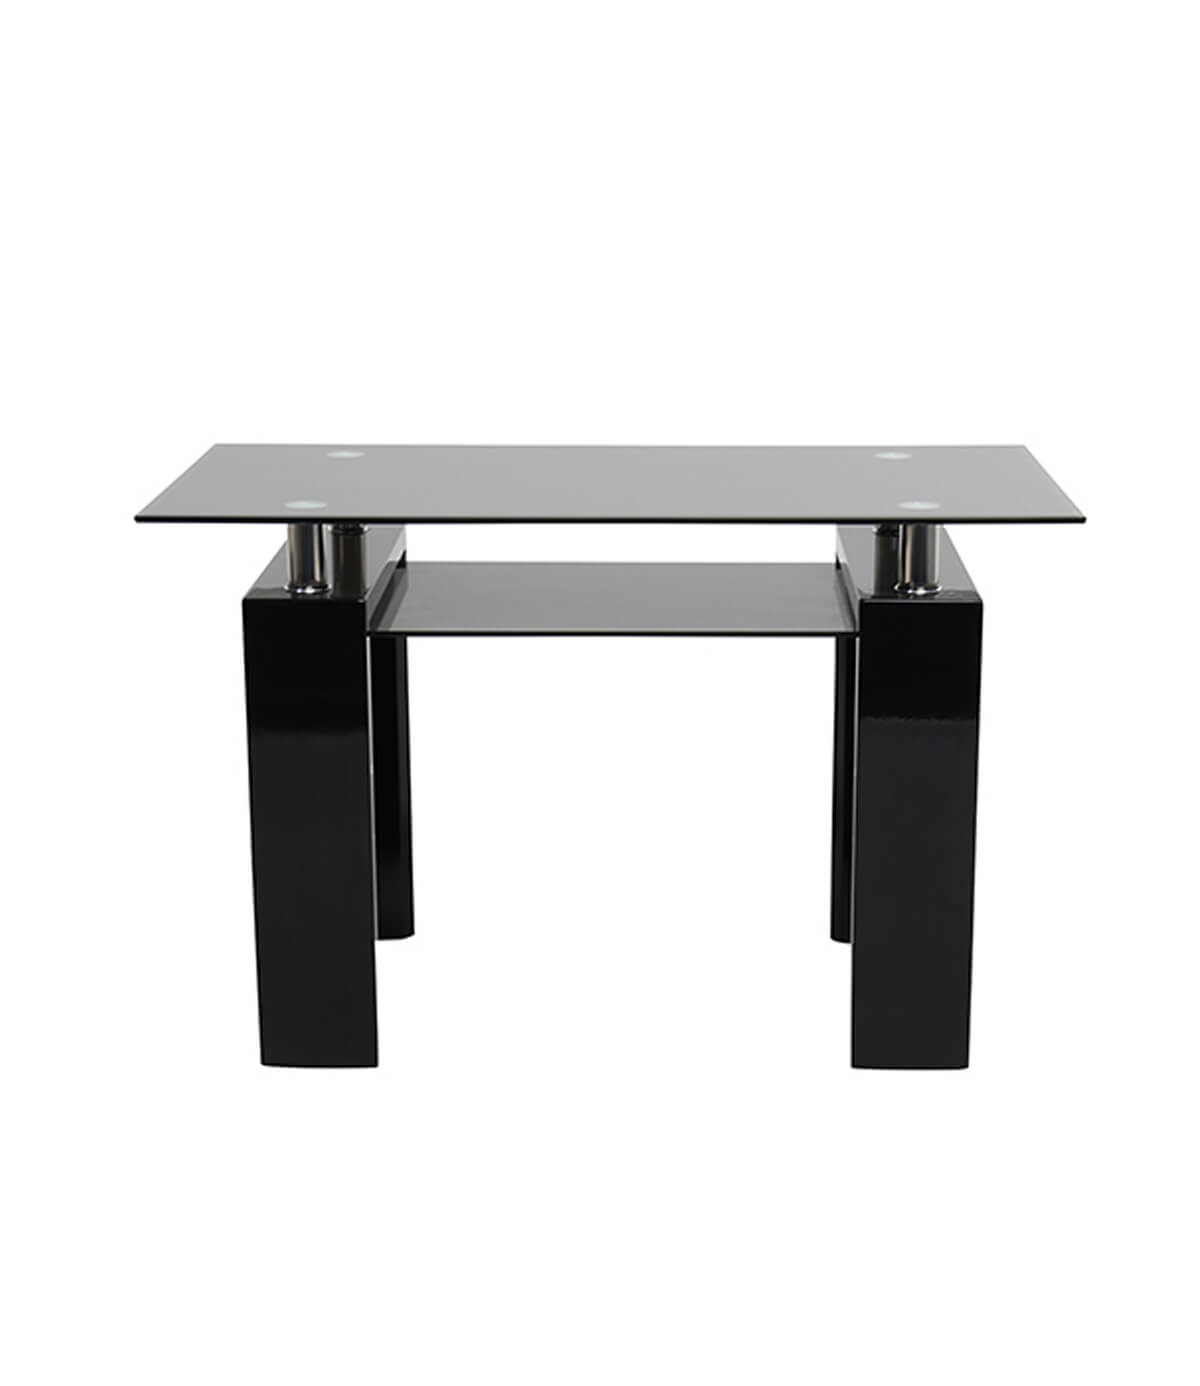 100 Round Dining Table Tesco 38 Best Dining Room  : Metro120cmBlackGlassandBlackGlossDiningTable from 45.77.108.62 size 1200 x 1386 jpeg 21kB